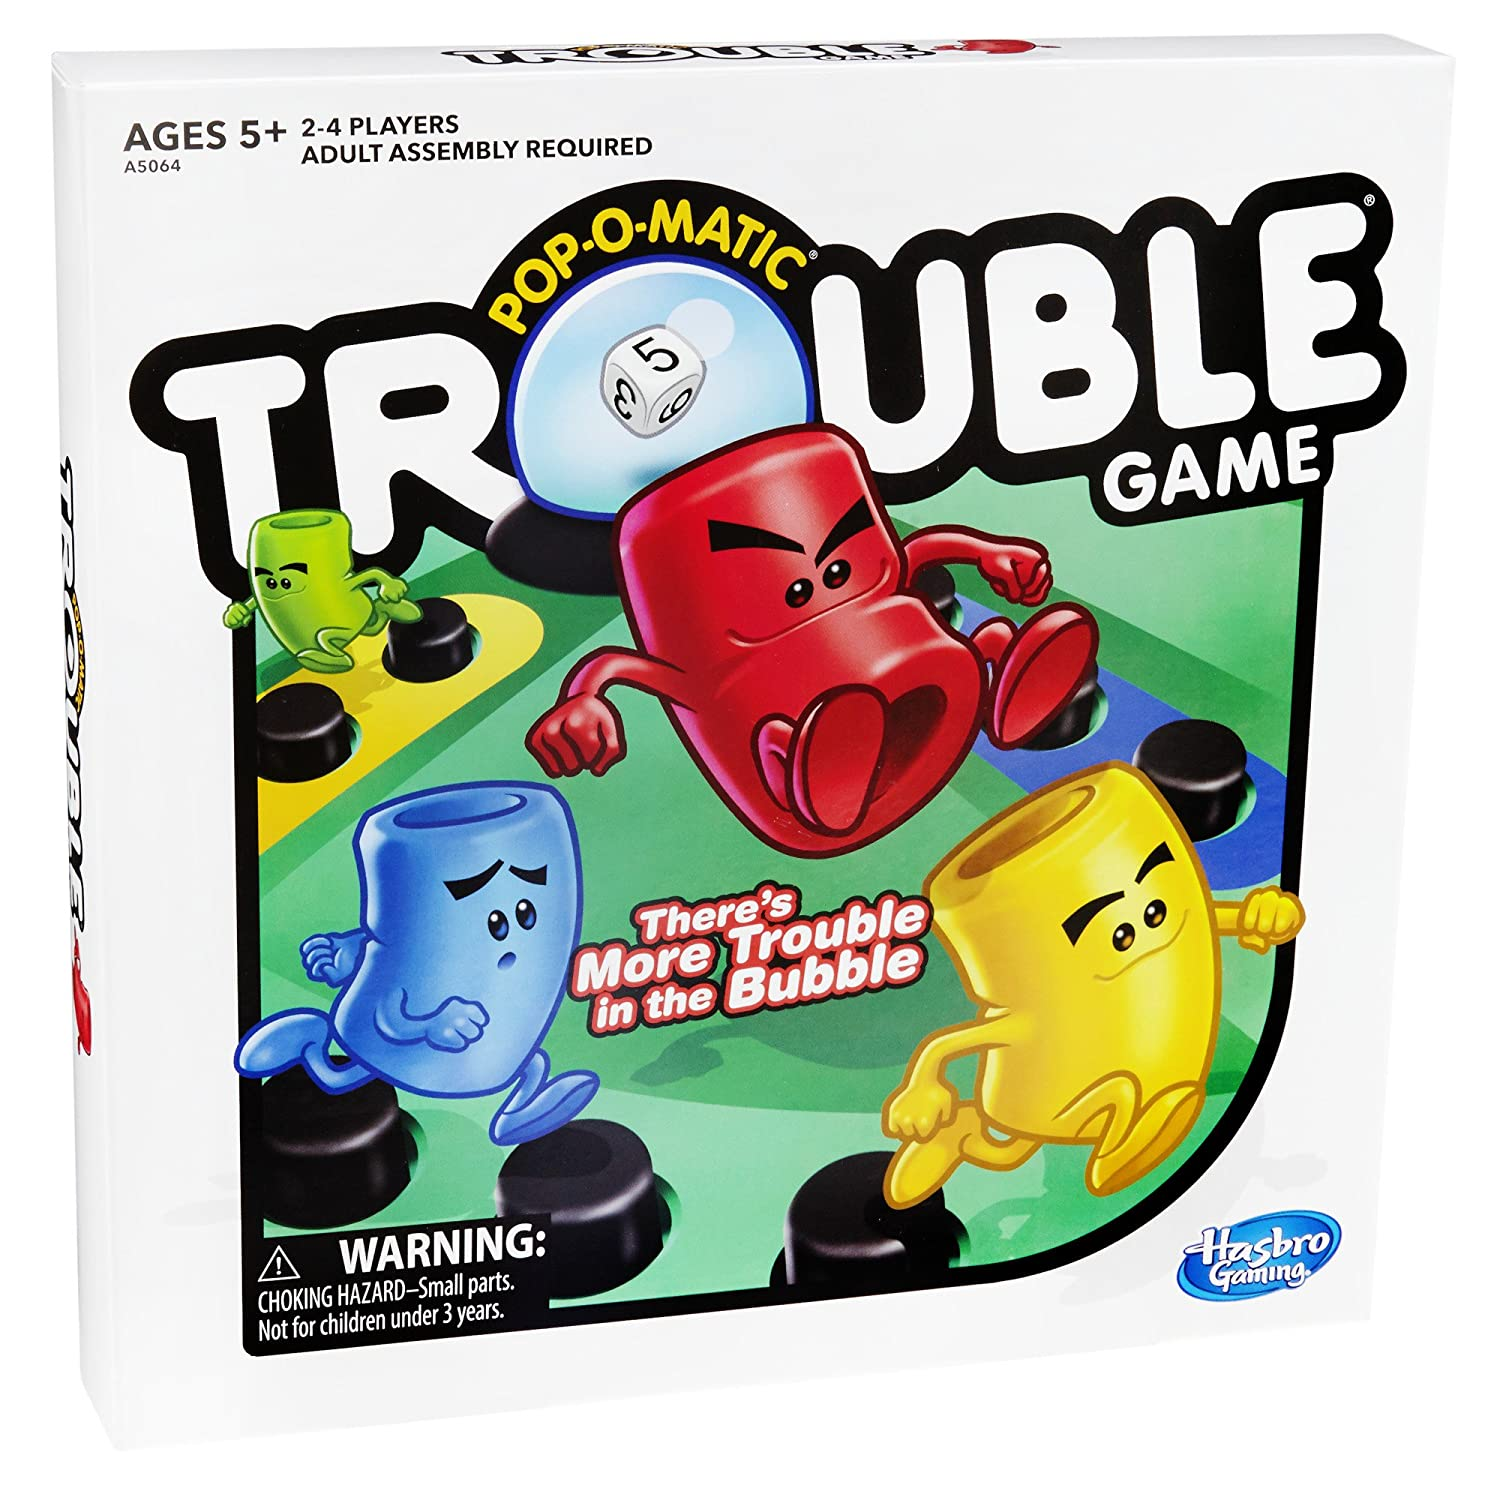 Develops Motor Skills Deductive Reasoning Aim Gamie Aiming Hat Launcher Game for Kids Board Game for Boys and Girls Fun and Interactive Birthday or Slumber Party Activity